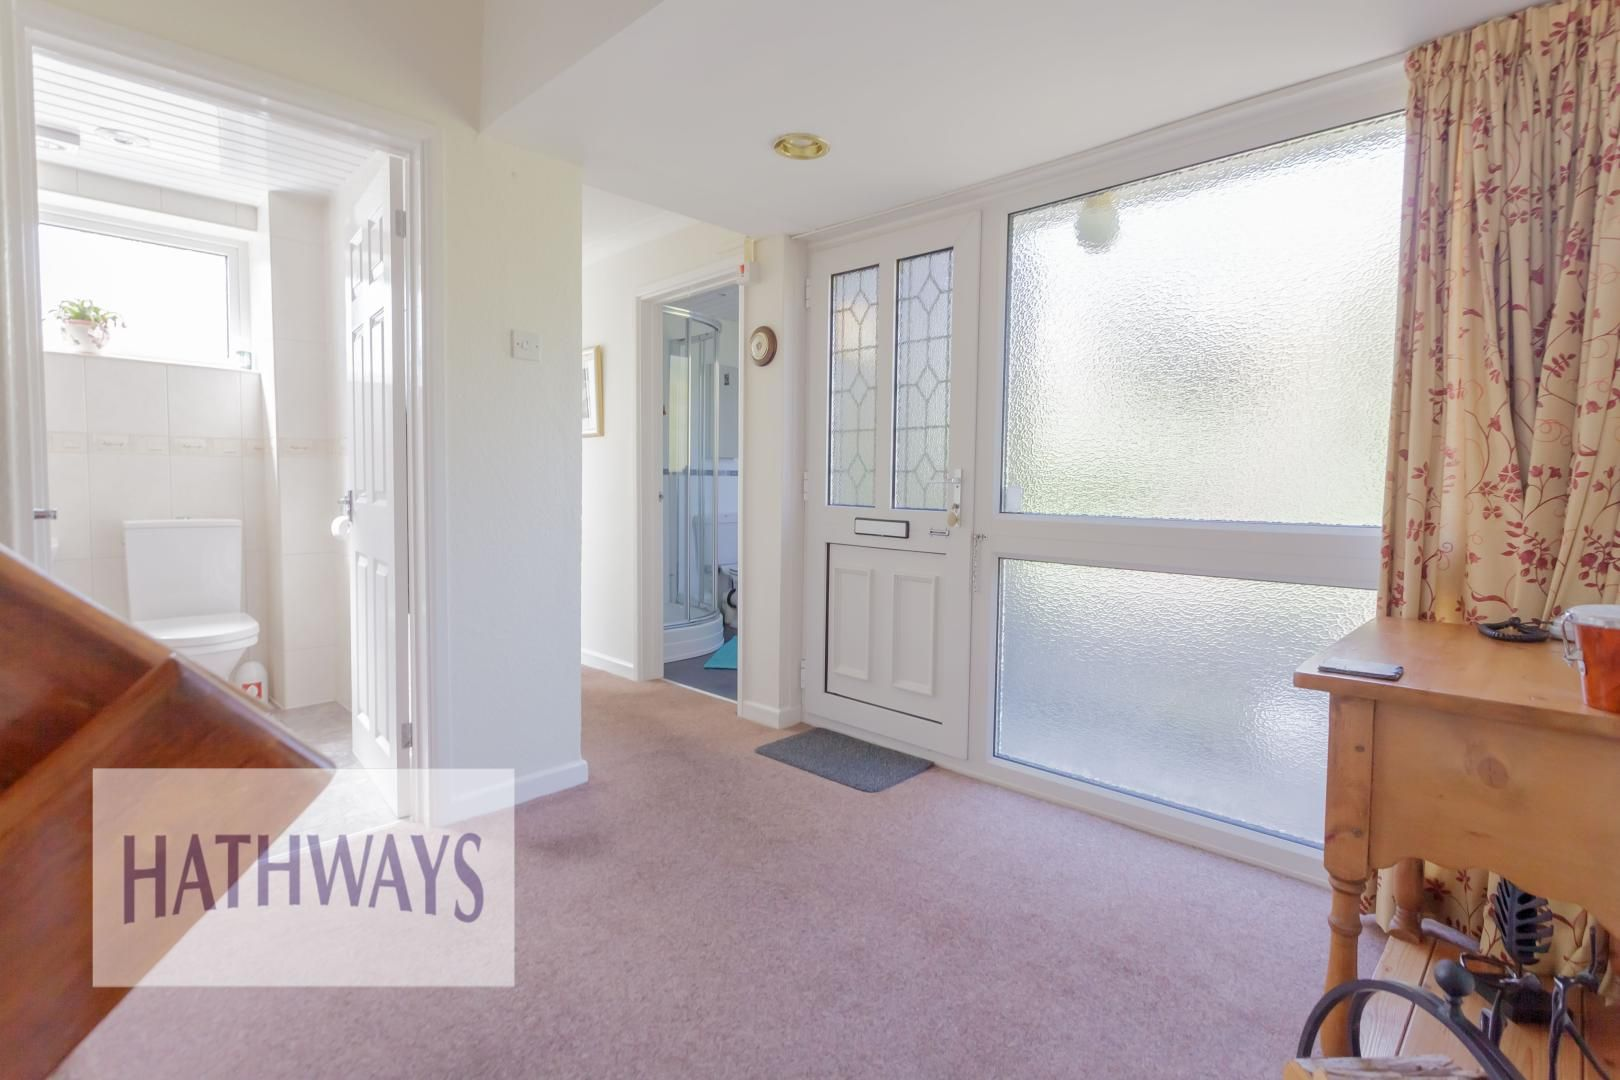 4 bed house for sale in Greenfield  - Property Image 4